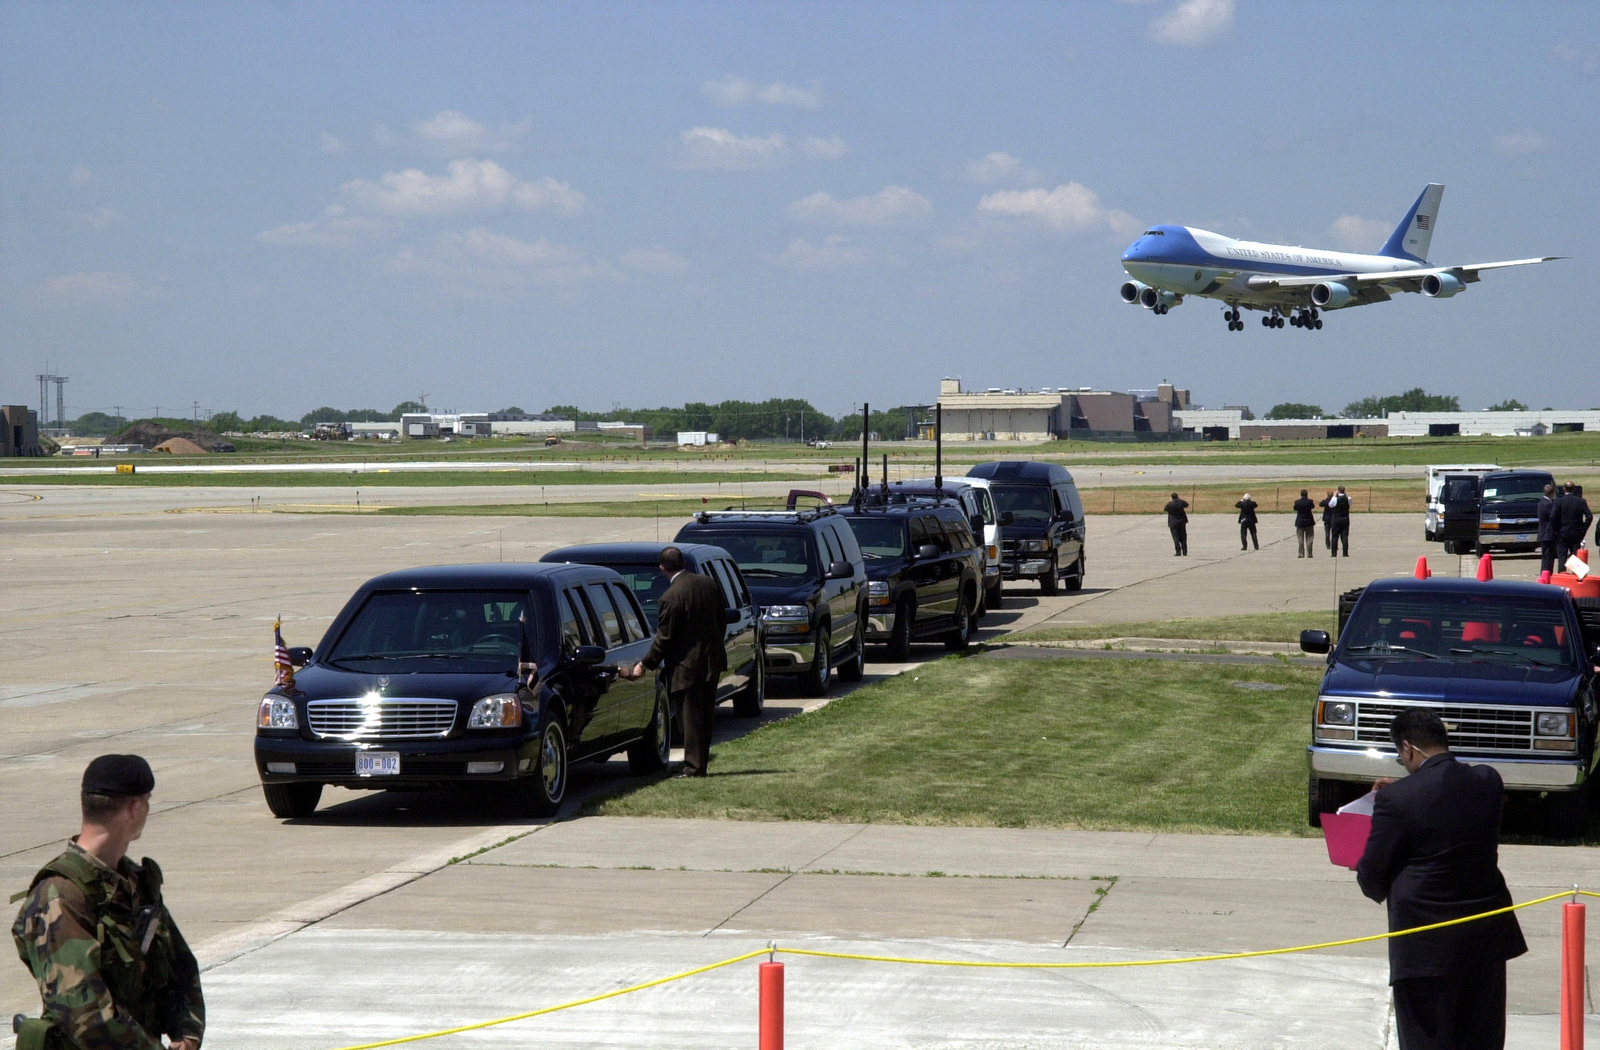 Limousines are lined up waiting on US President George W. Bush, as Air Force One (AF1) Lands at Minneapolis-St. Paul International Airport (MSP)